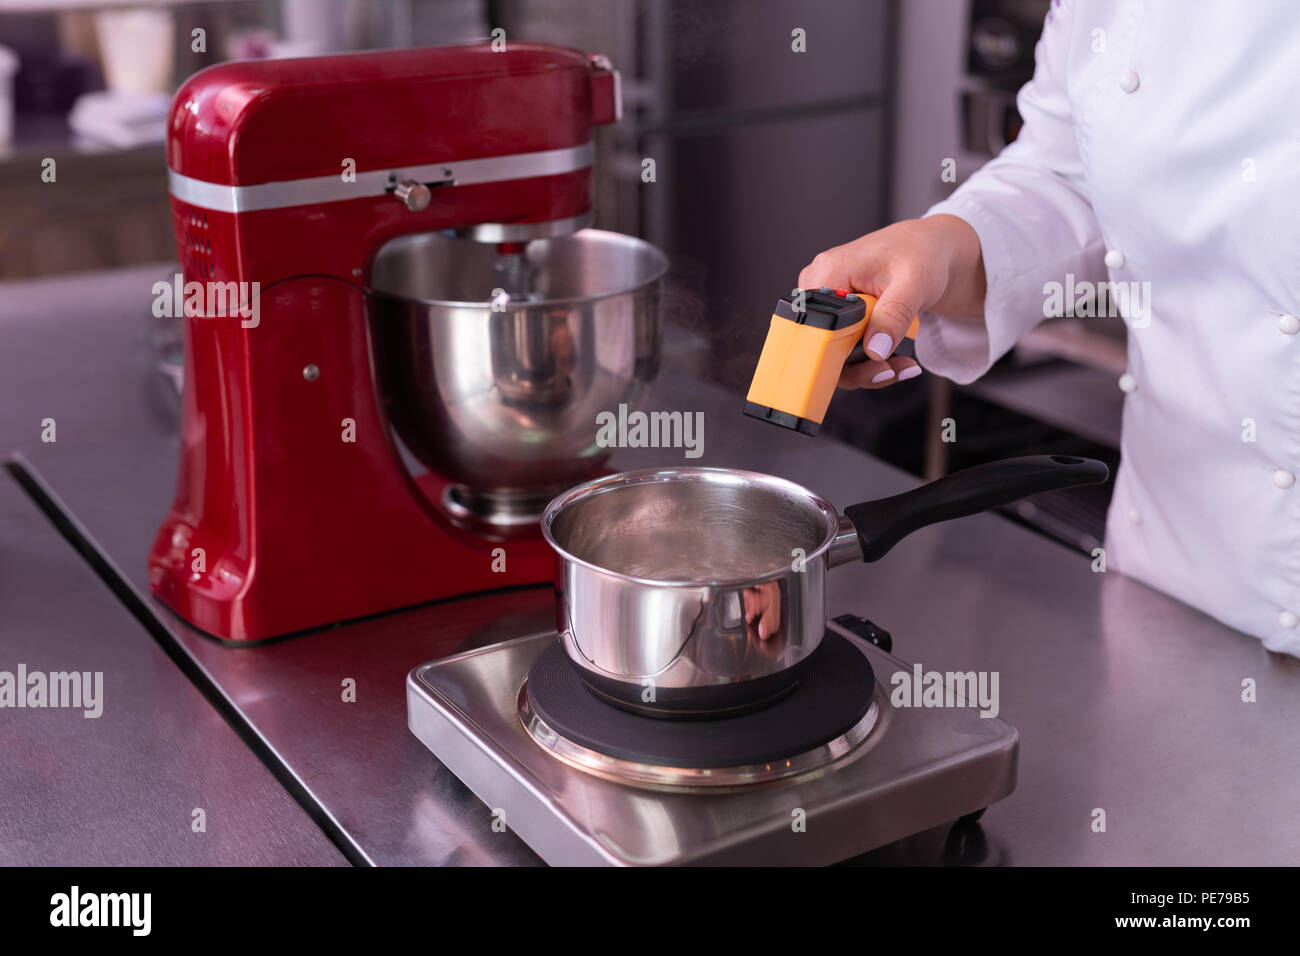 Professional baker measuring temperature of water cooking dessert - Stock Image